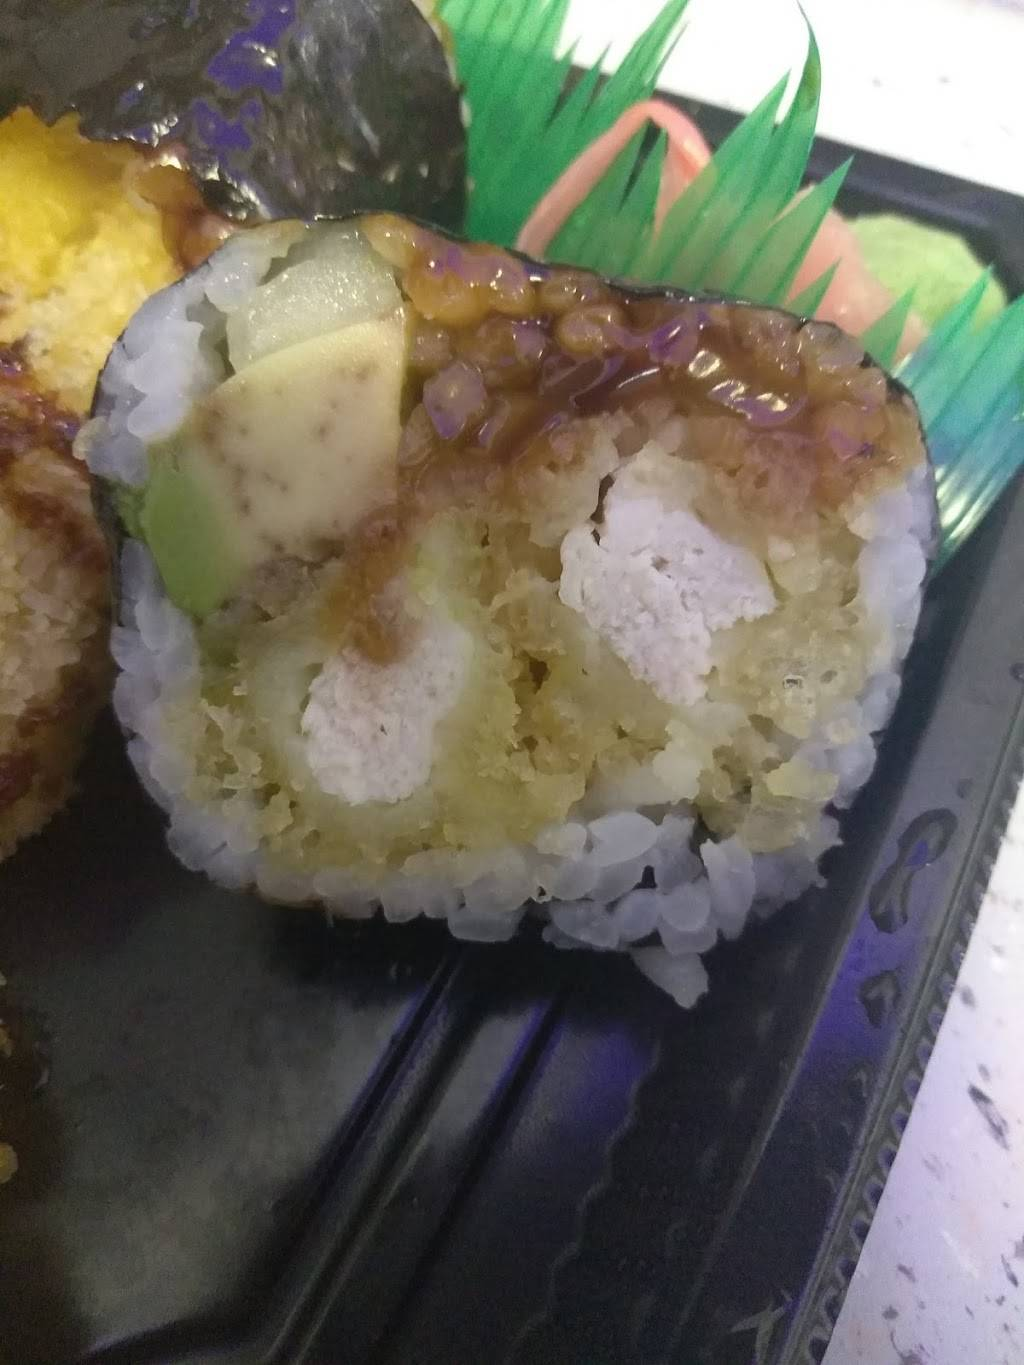 Tokyo Steakhouse & Sushi | restaurant | 728 South US Highway 131, Three Rivers, MI 49093, USA | 2692736688 OR +1 269-273-6688